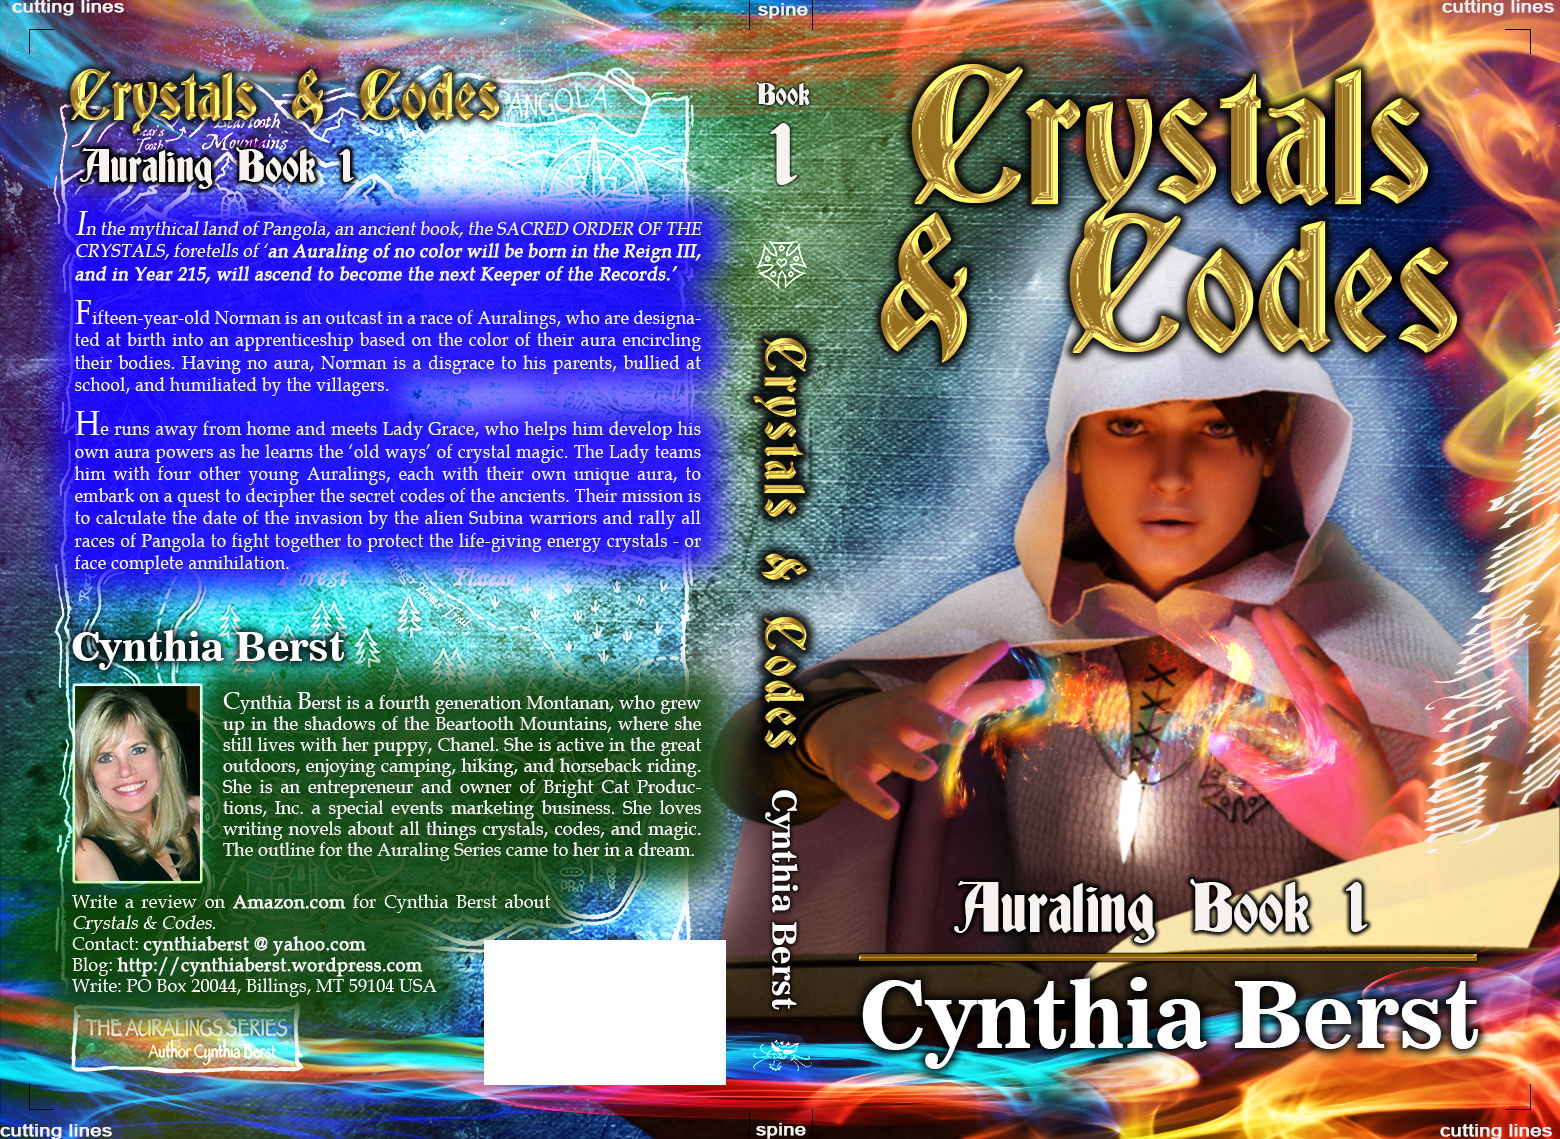 Crystals & Codes - Fantasy Book Cover Design for children ages: 8 to 12 years old.